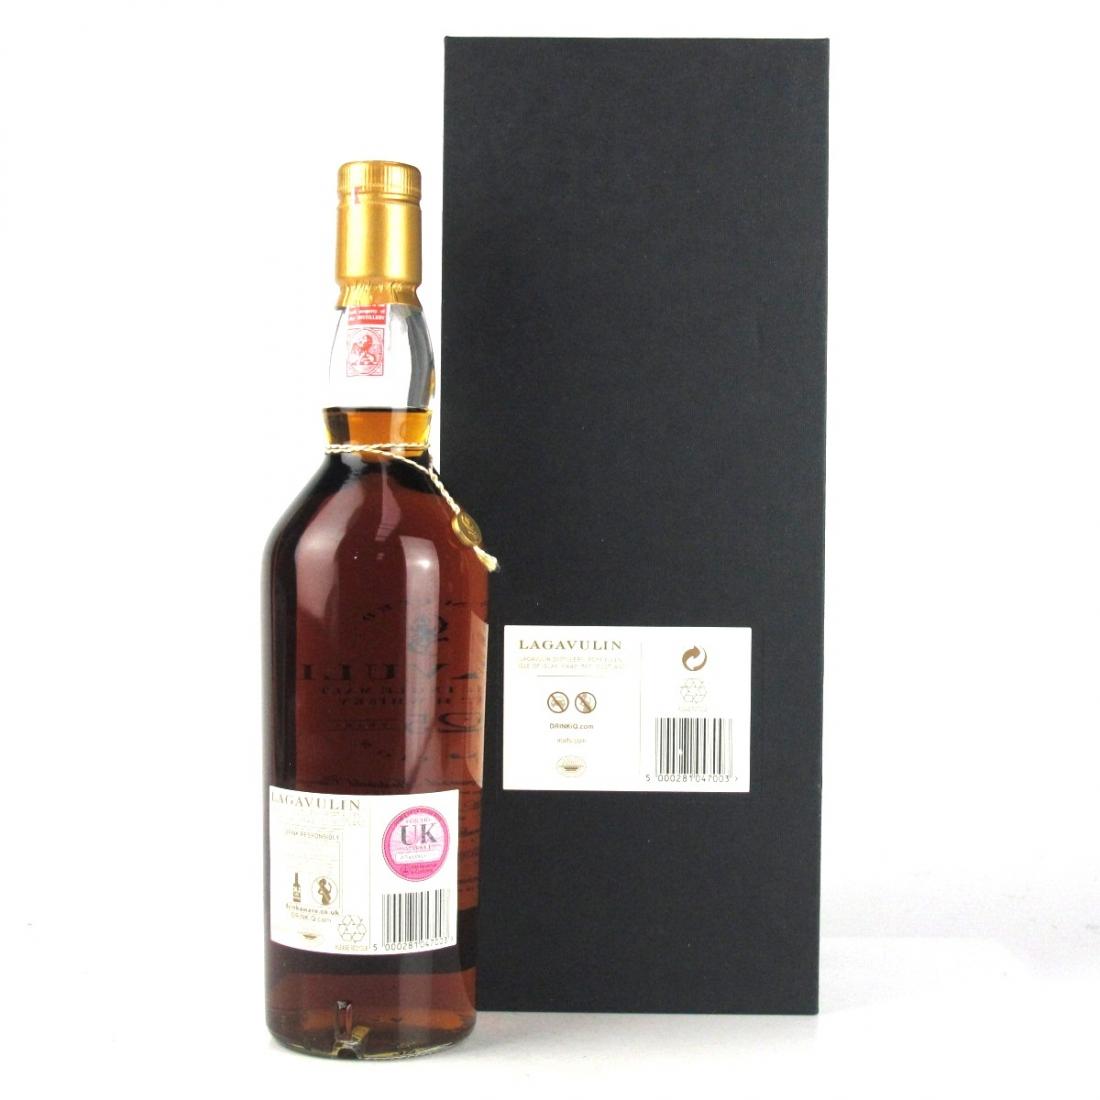 Lagavulin 25 Year Old Bicentenary 2016